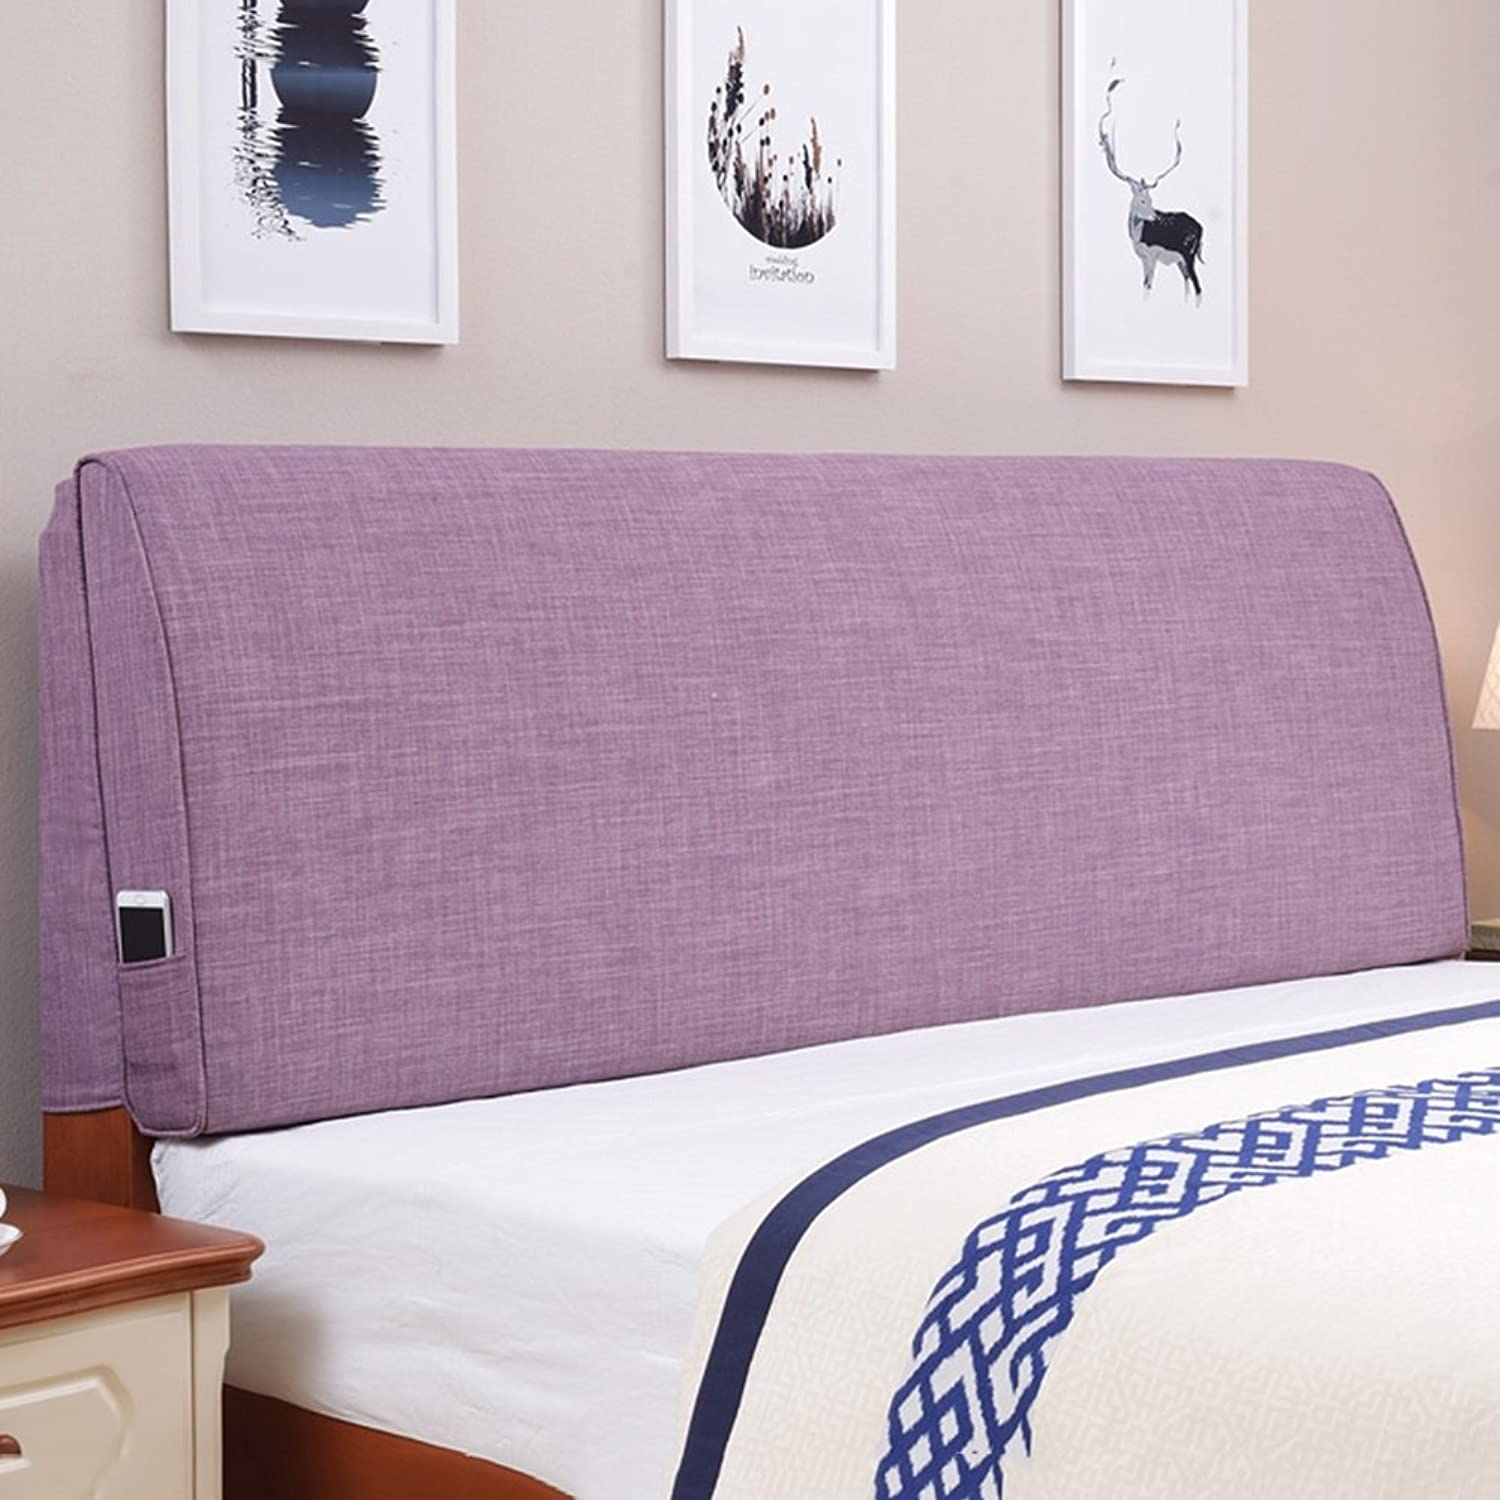 WENZHE Upholstered Fabric Headboard Bedside Cushion Pads Cover Bed Wedges Backrest Waist Pad Cloth Art Soft Case Large Back Home Bedroom Lounge Multifunction Pillow Bed Cover Washable, There Are Headboards, 5 colors, 9 Sizes Optional ( color   5  , Size